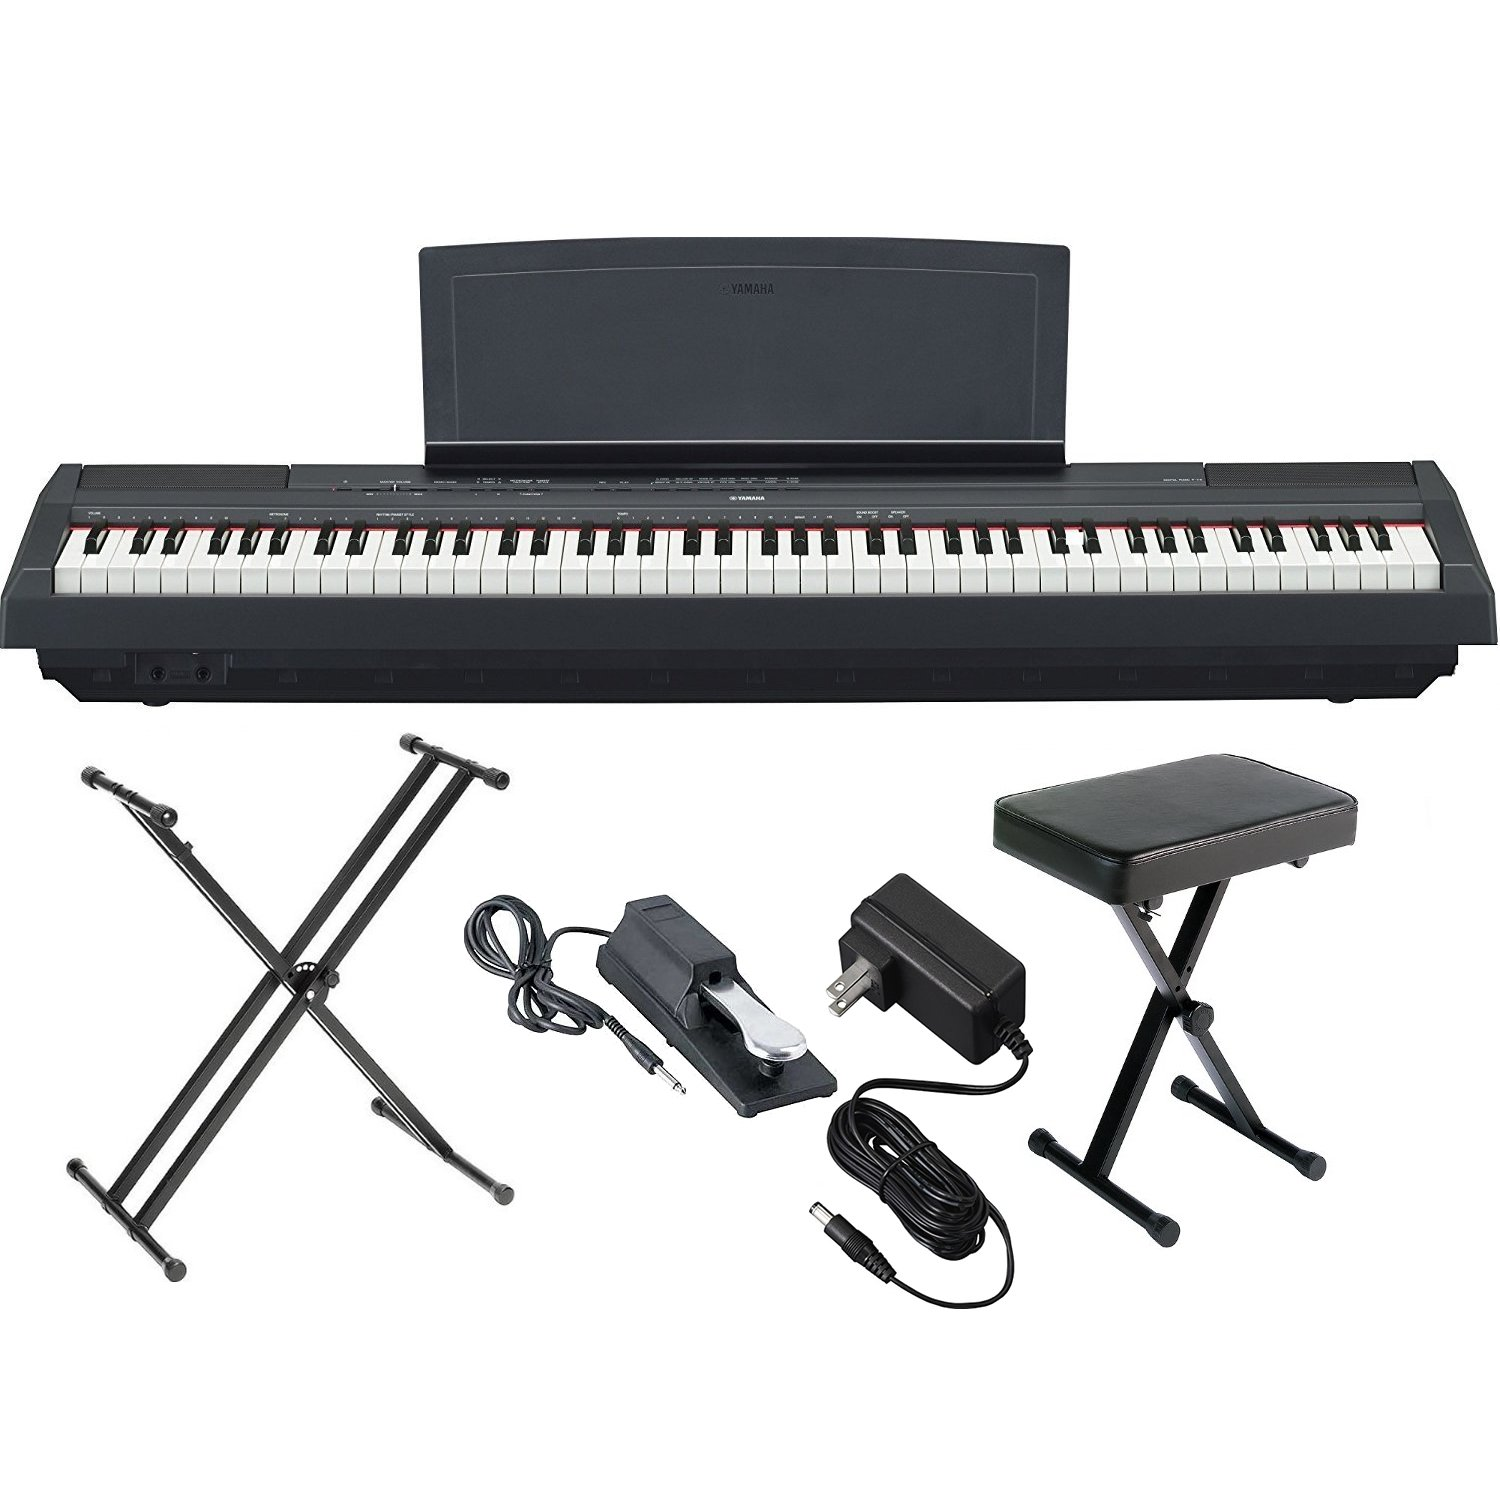 Yamaha P125B 88-Key Weighted Action Digital Piano with Sustain Pedal, Power Supply, Double-Braced X-Style Keyboard Stand, and Padded X-Style Piano Bench by Yamaha Genesis